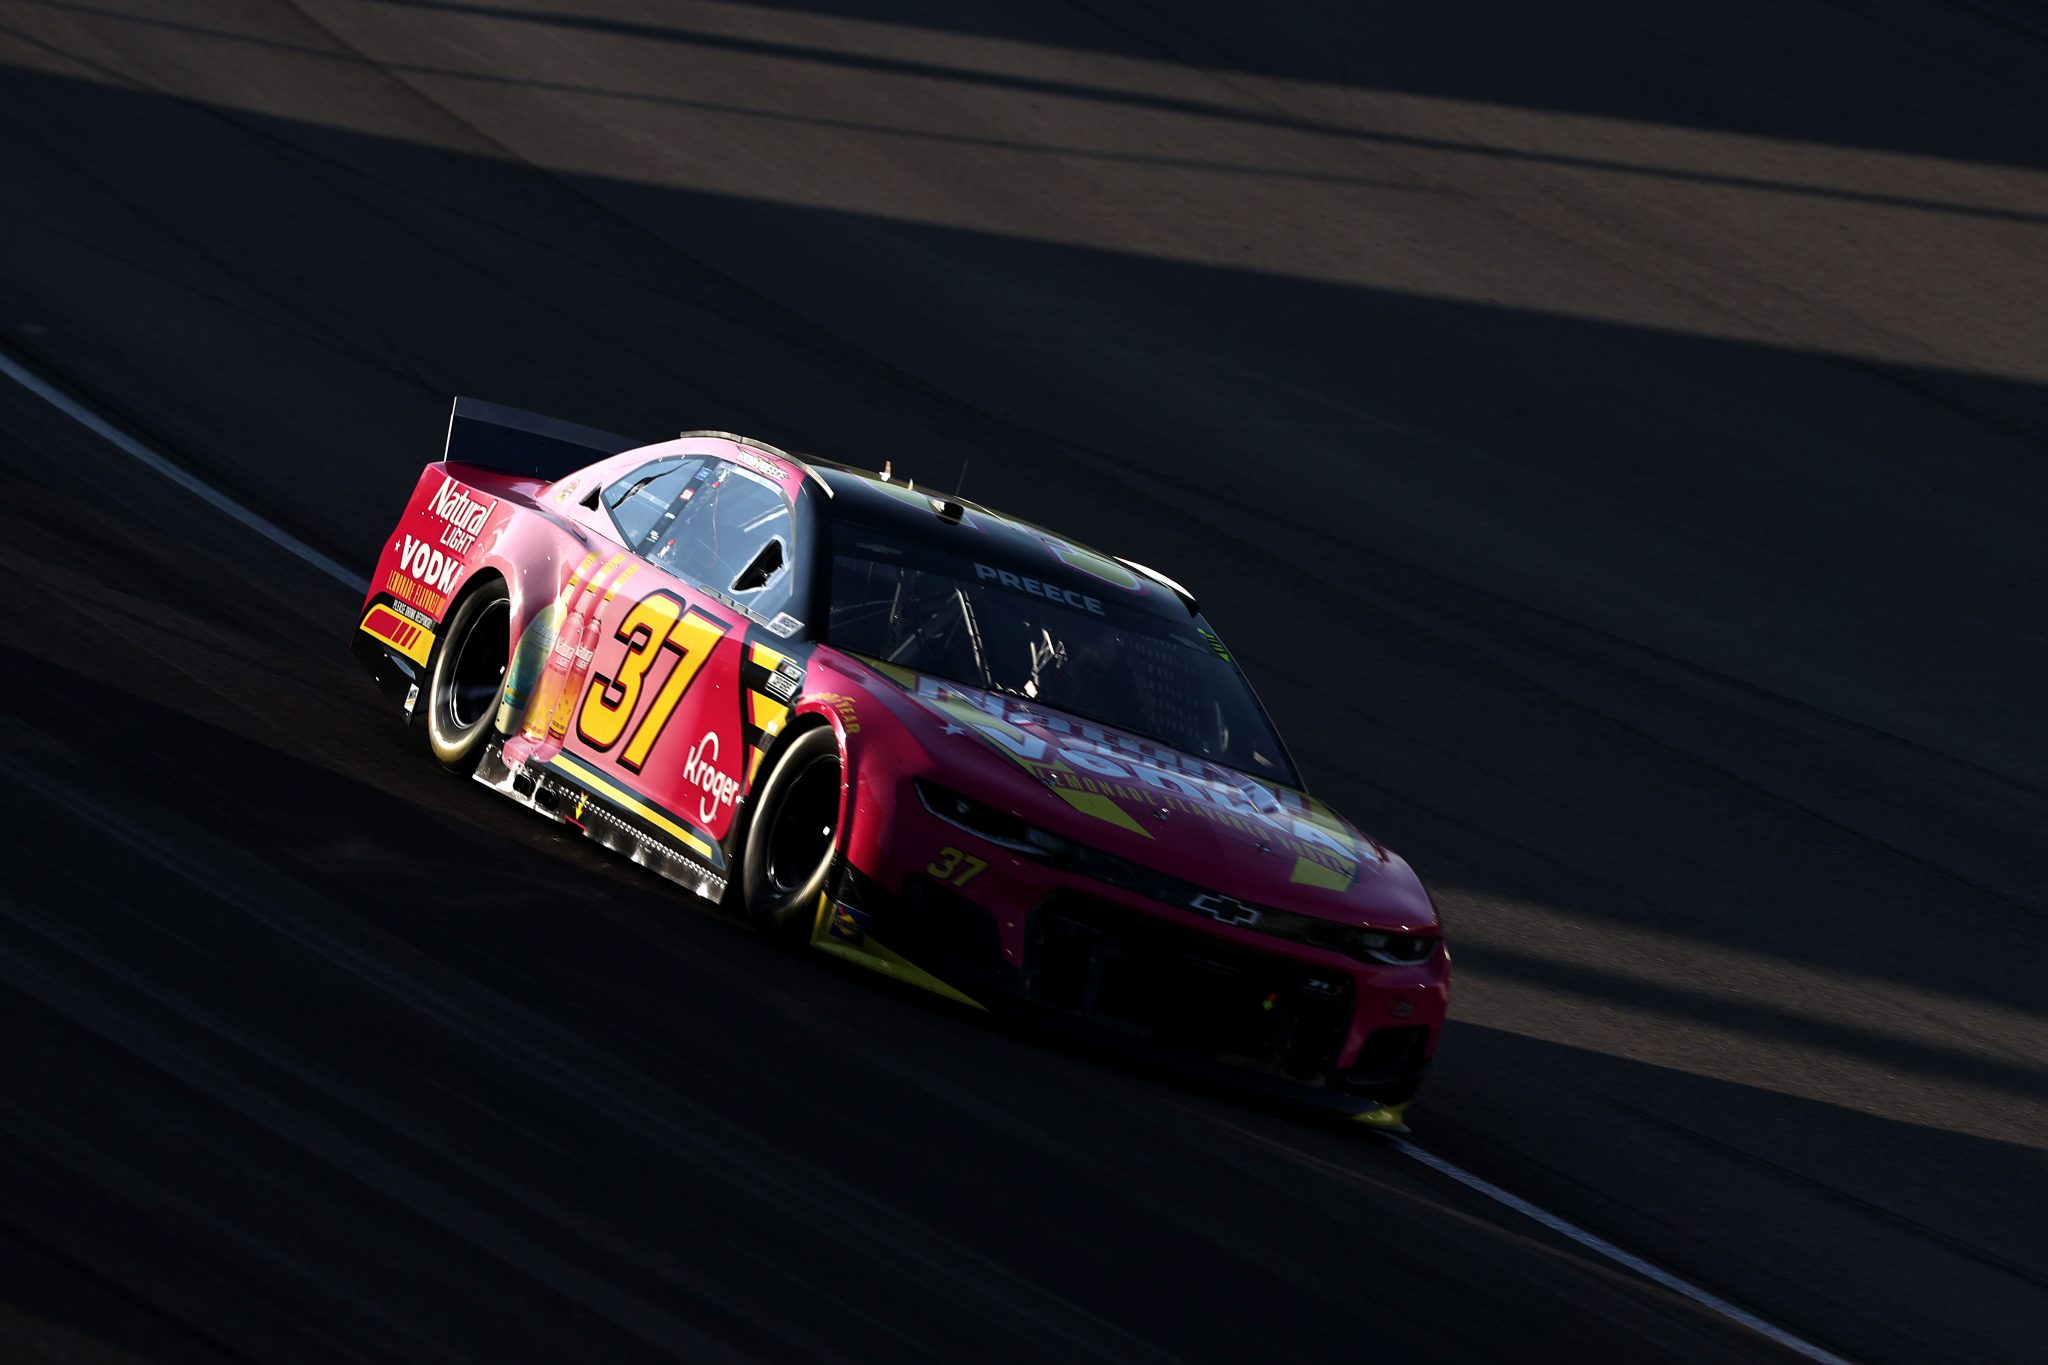 LAS VEGAS, NEVADA - SEPTEMBER 26:  Ryan Preece, driver of the #37 Natural Light Vodka Chevrolet, drives during the NASCAR Cup Series South Point 400 at Las Vegas Motor Speedway on September 26, 2021 in Las Vegas, Nevada. (Photo by Meg Oliphant/Getty Images) | Getty Images